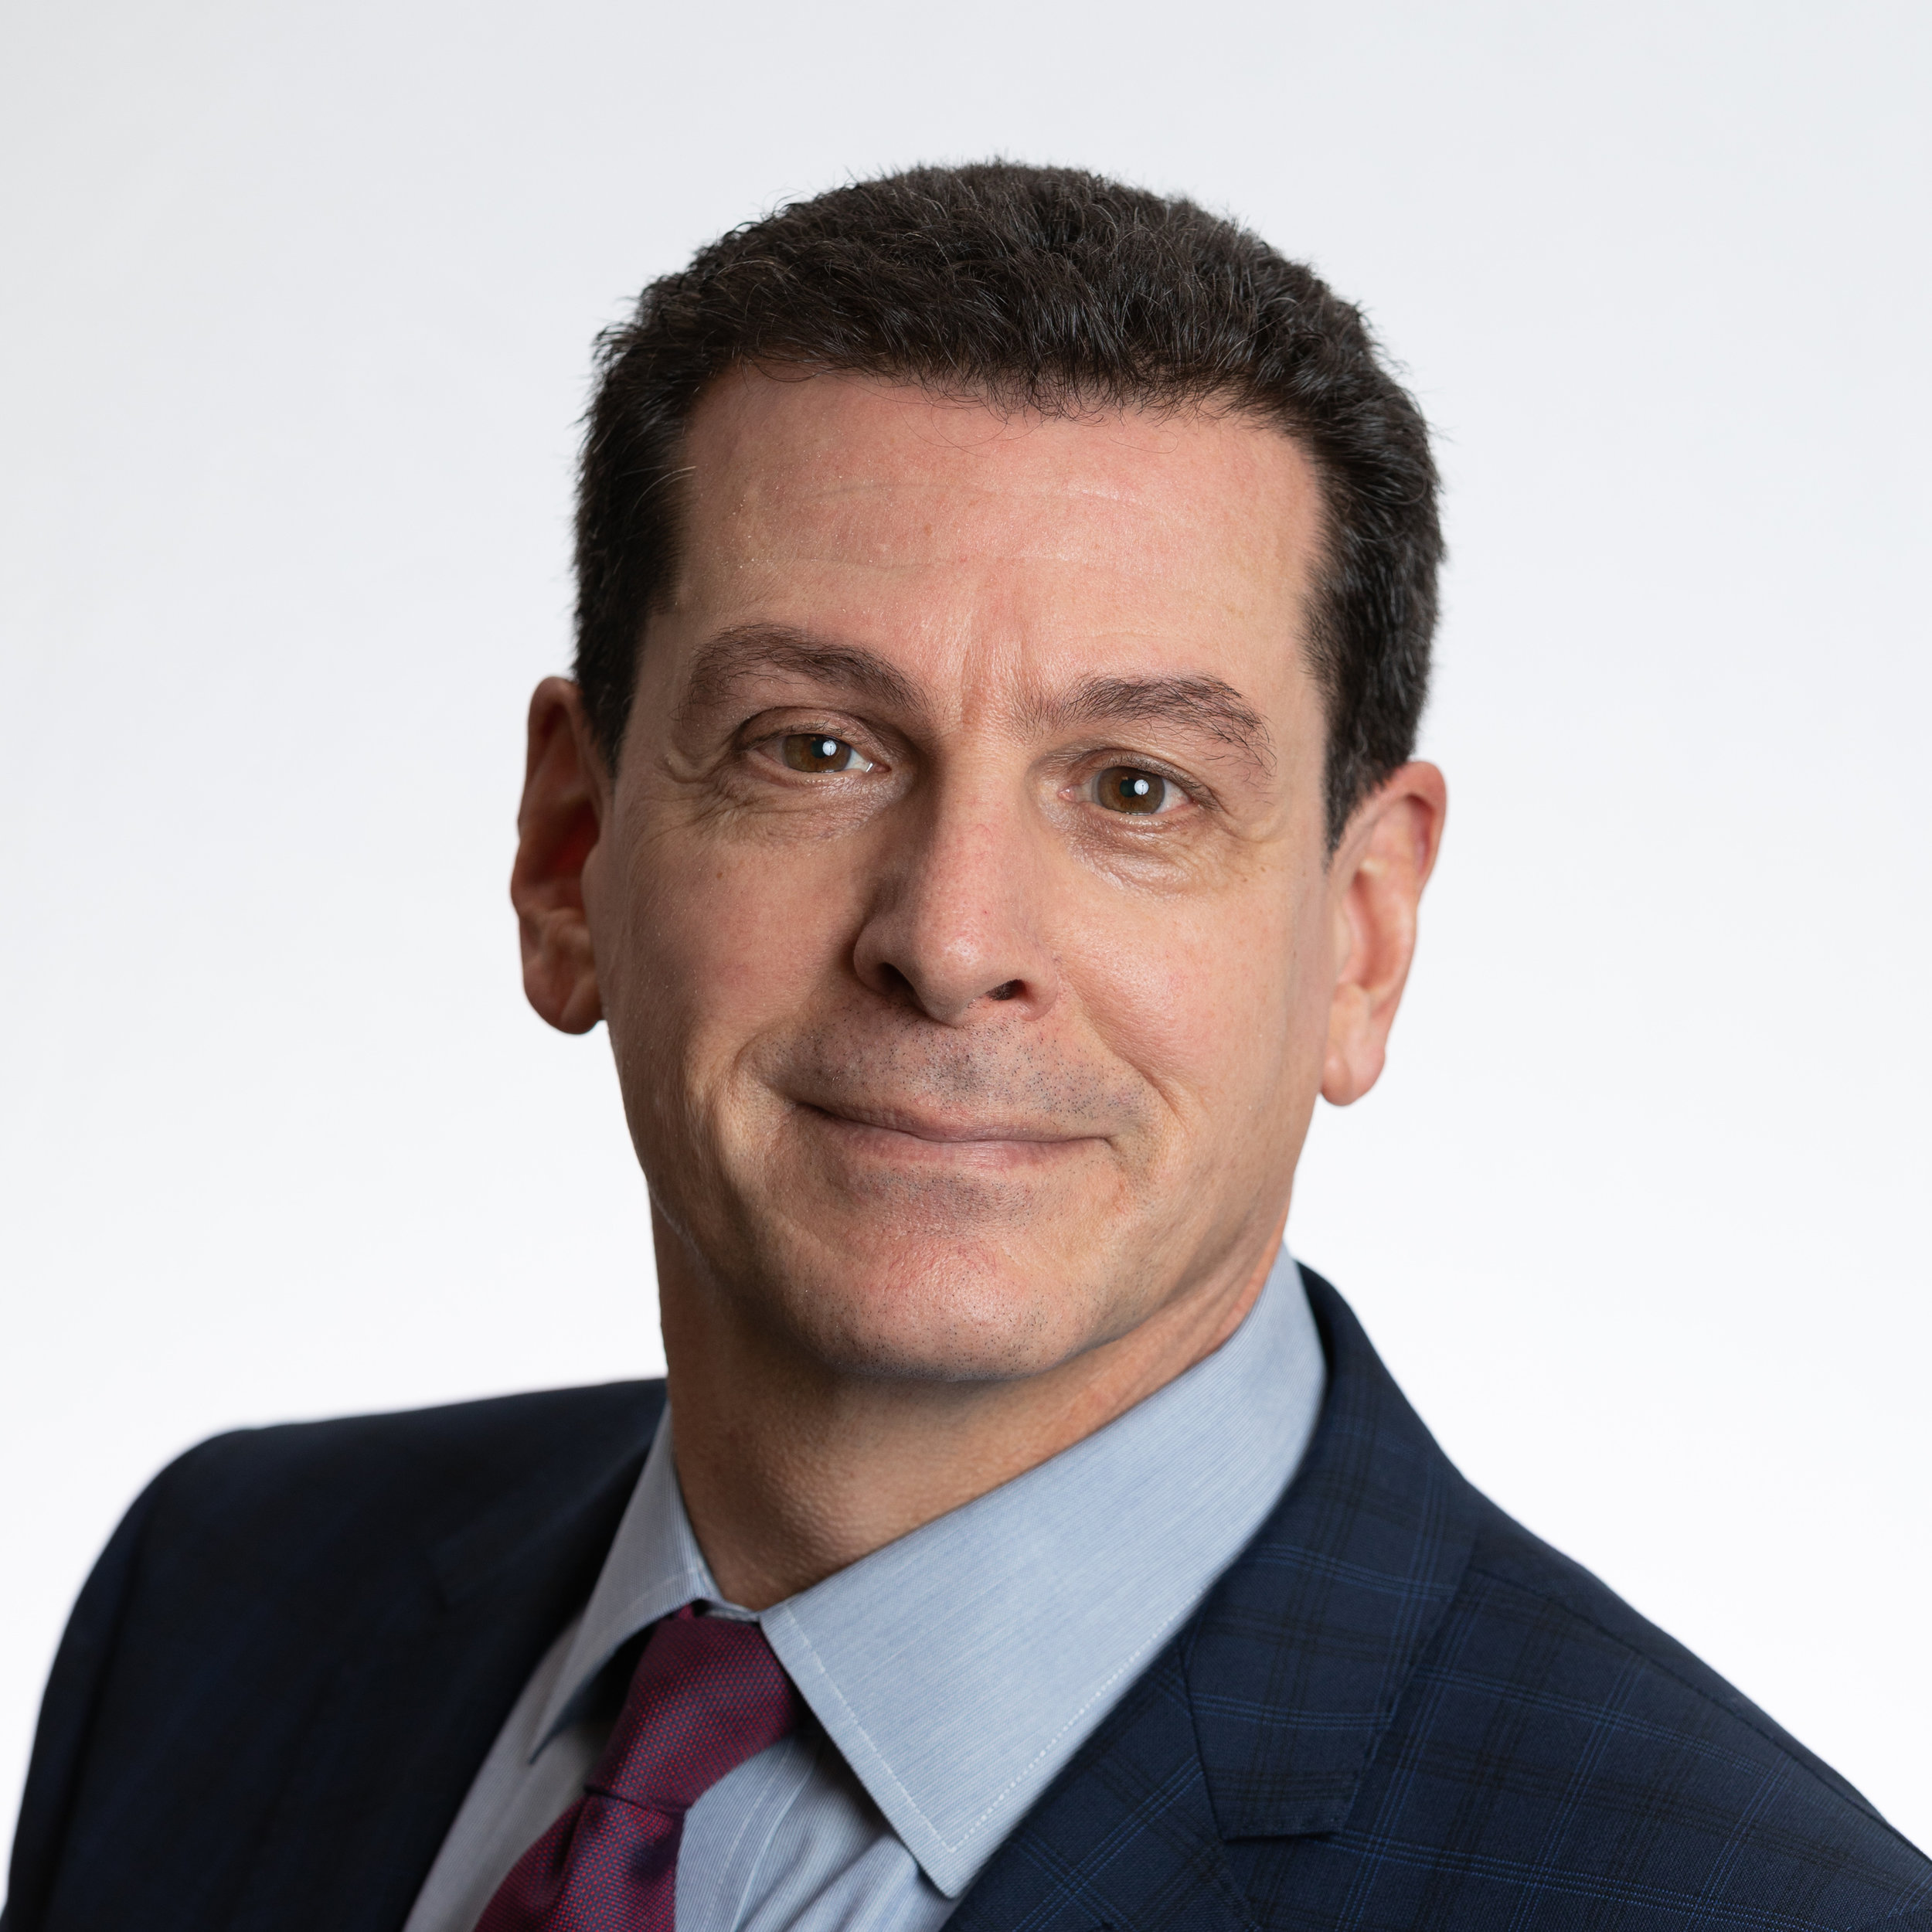 Todd Phillips - EXECUTIVE VICE PRESIDENT